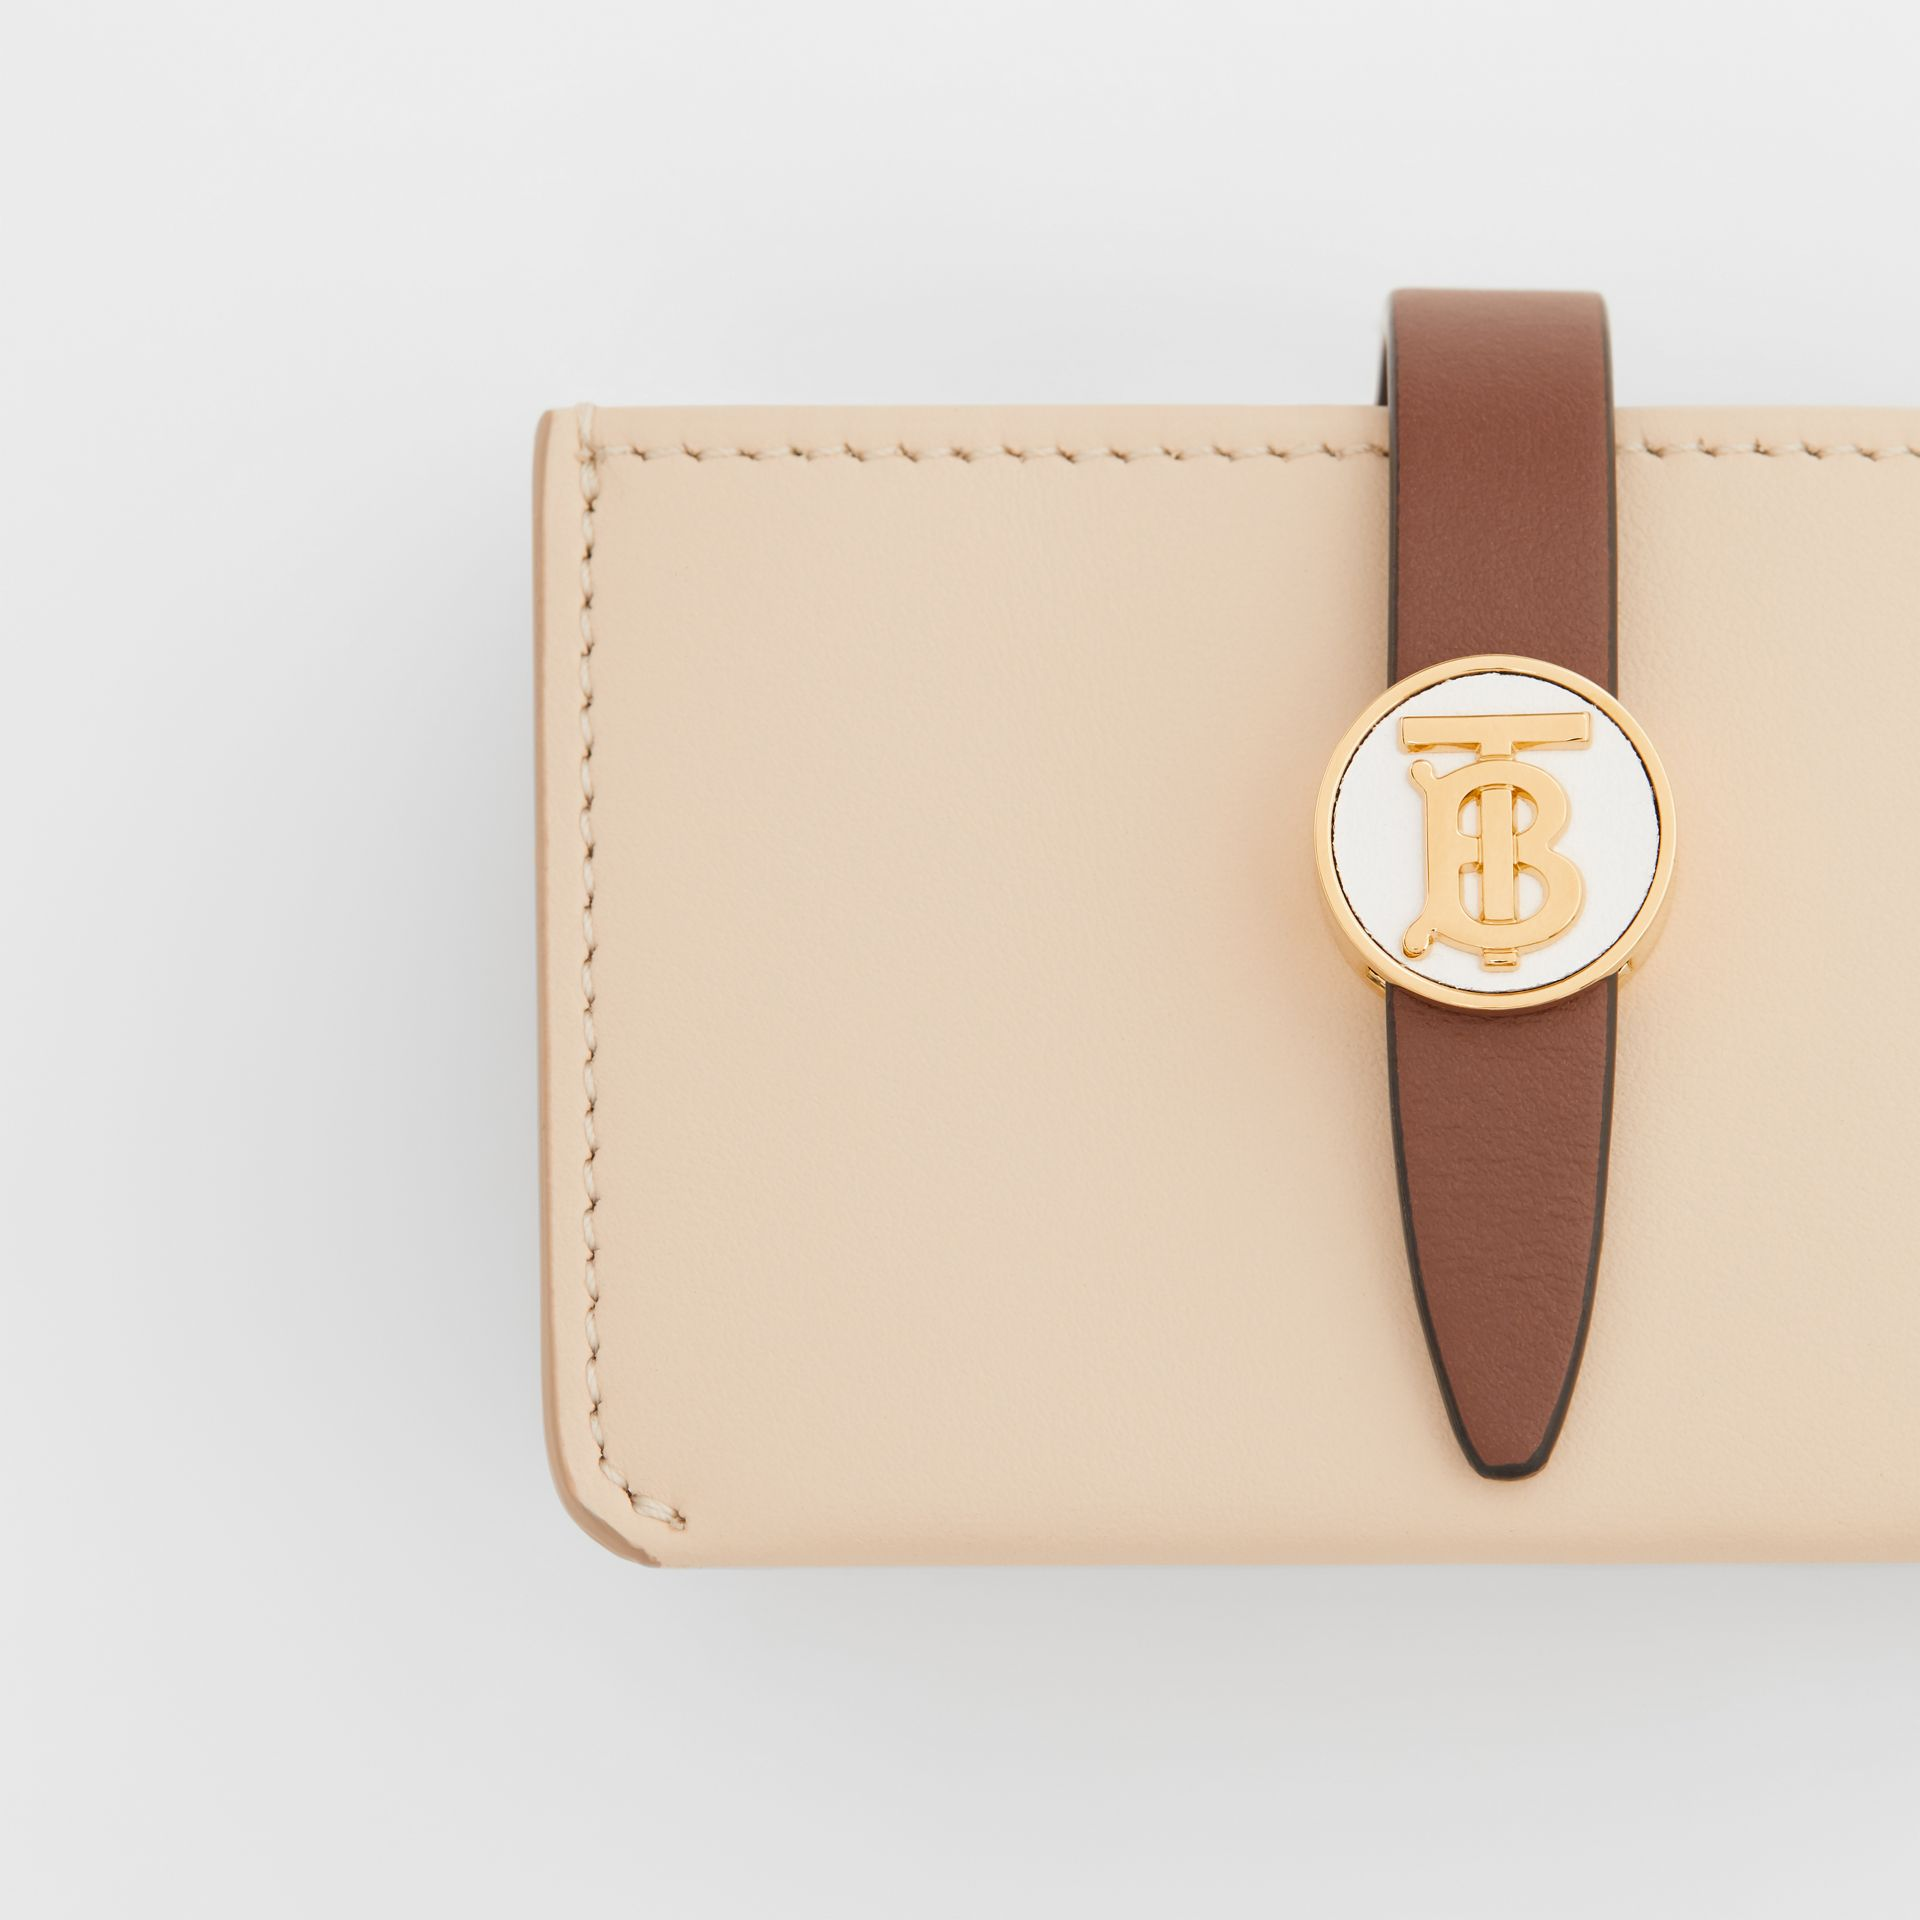 Monogram Motif Colour Block Leather Card Case in Tan/pale Copper/peony Pink - Women | Burberry - gallery image 1